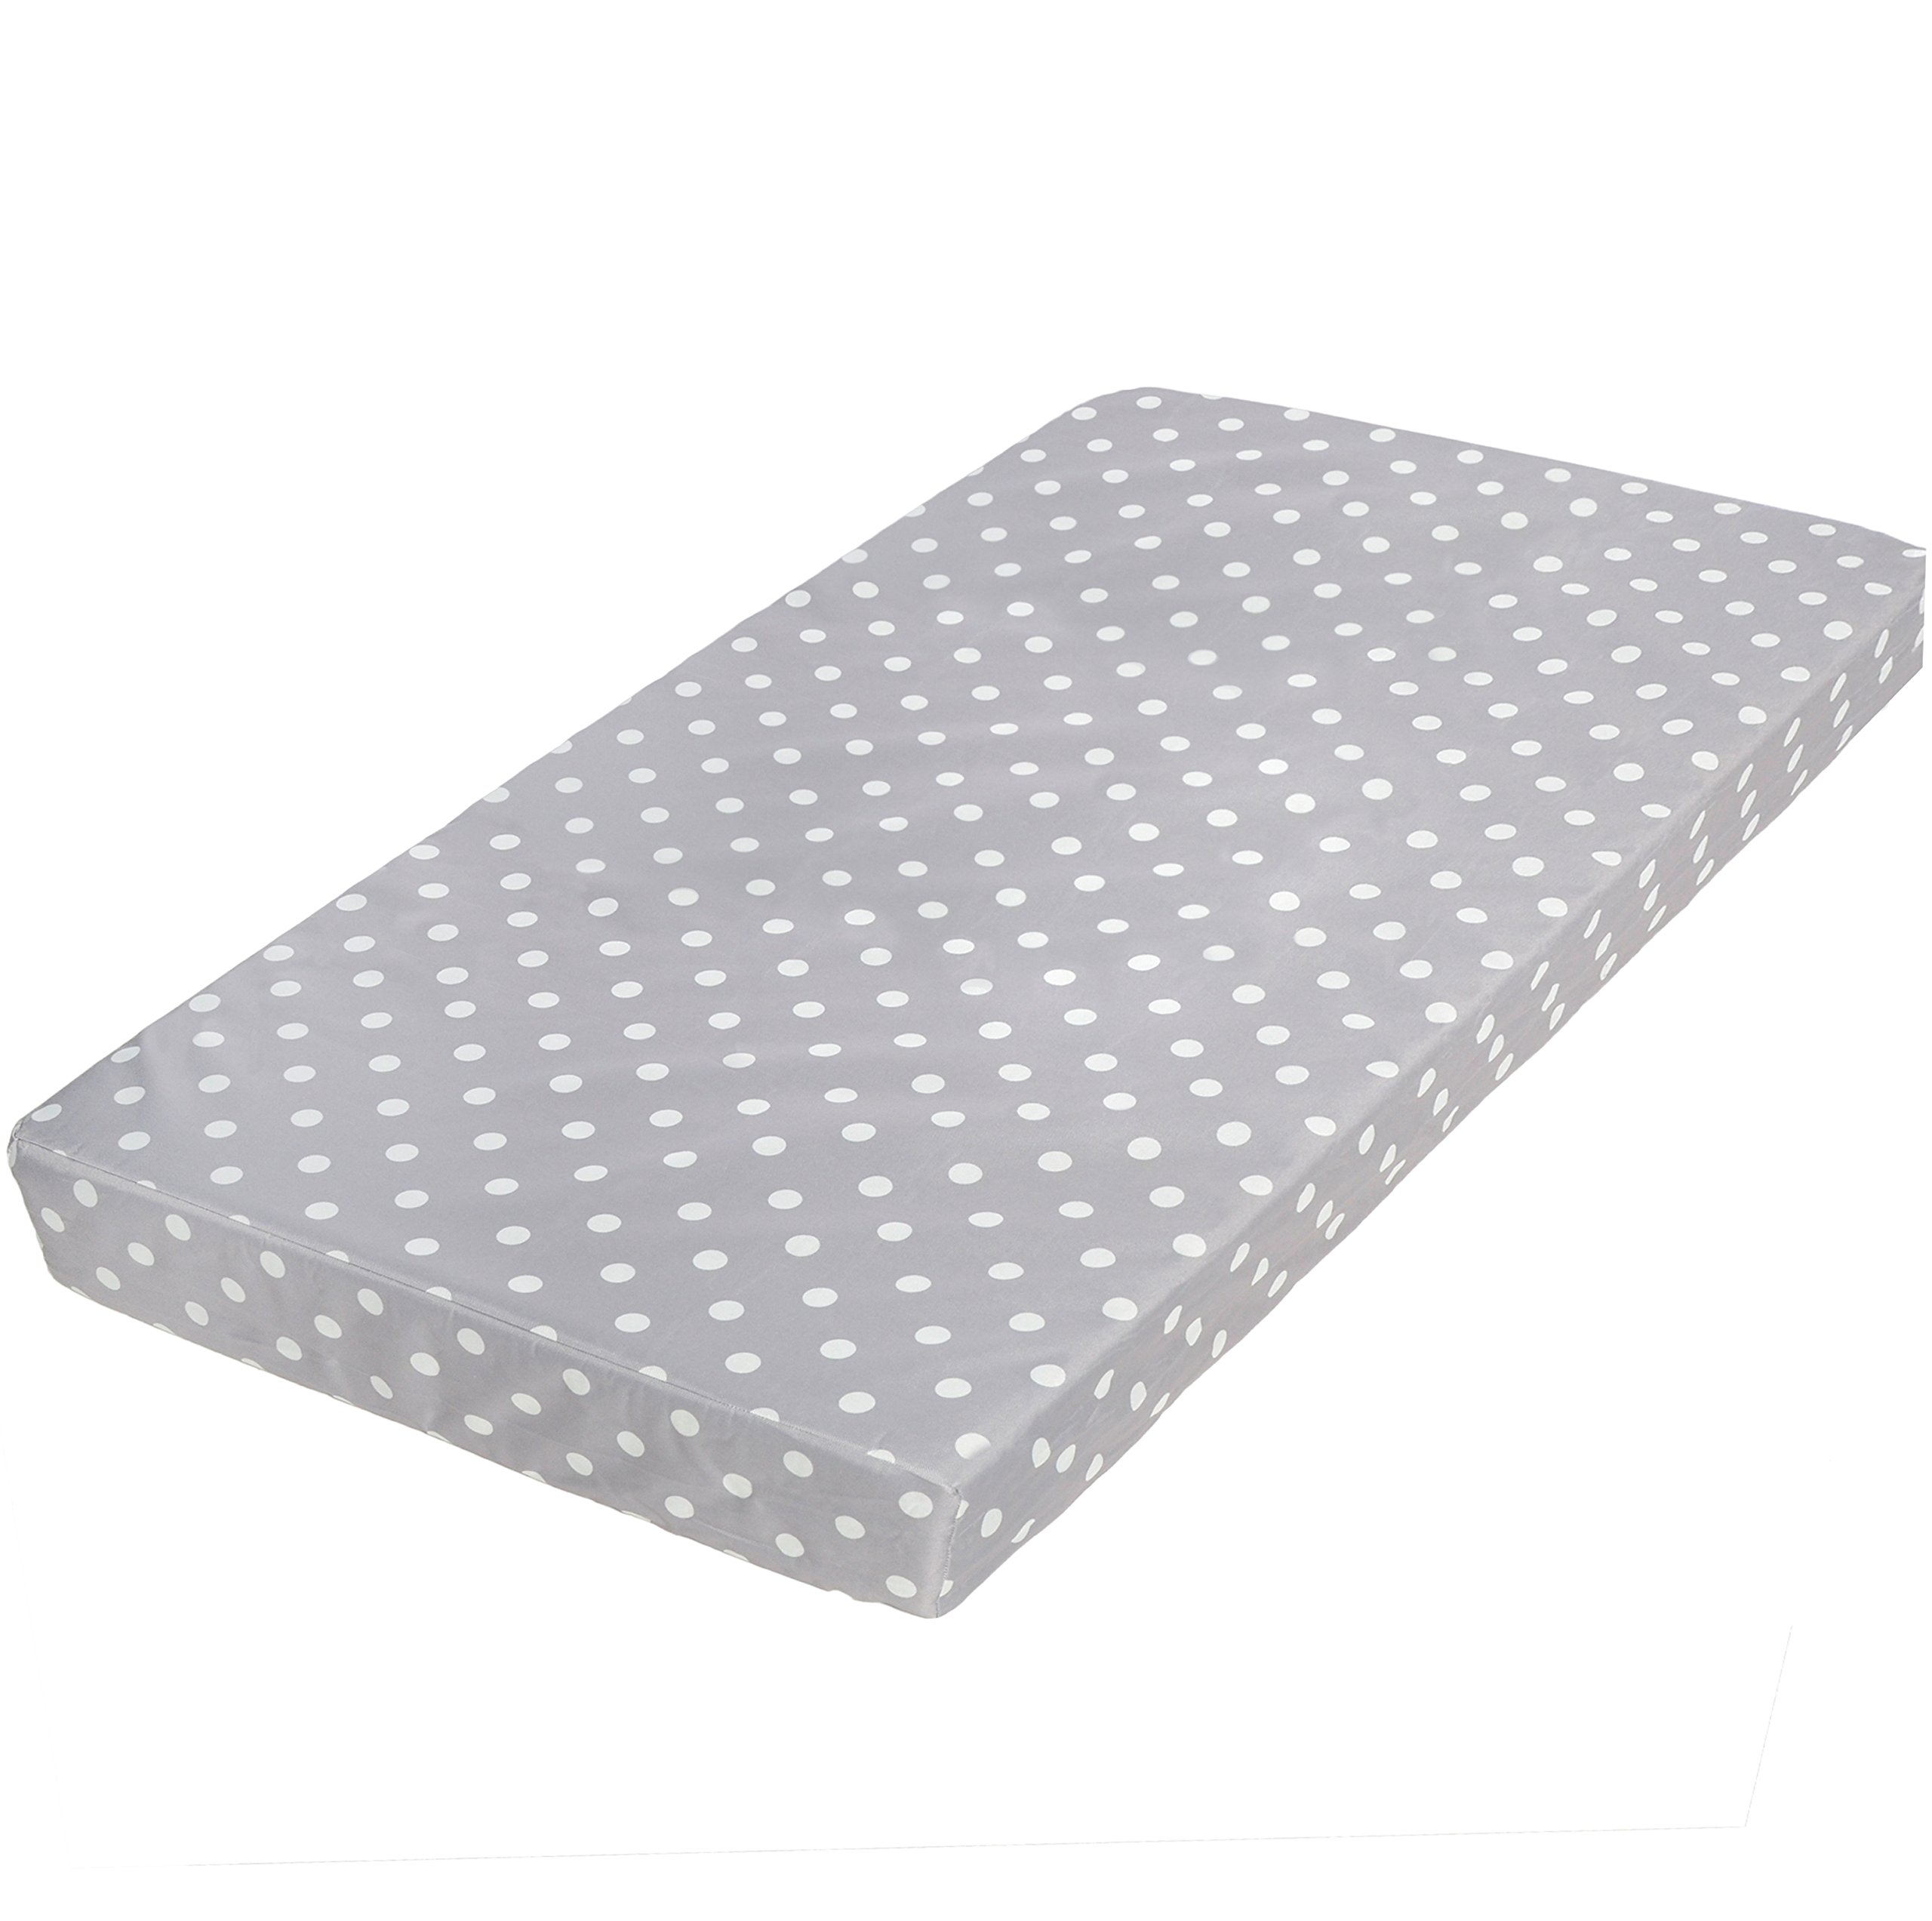 Milliard Hypoallergenic Baby Crib Mattress or Toddler Bed Mattress with Waterproof Cover - 27.5 inches x 52 inches x 4.75 inches by Milliard